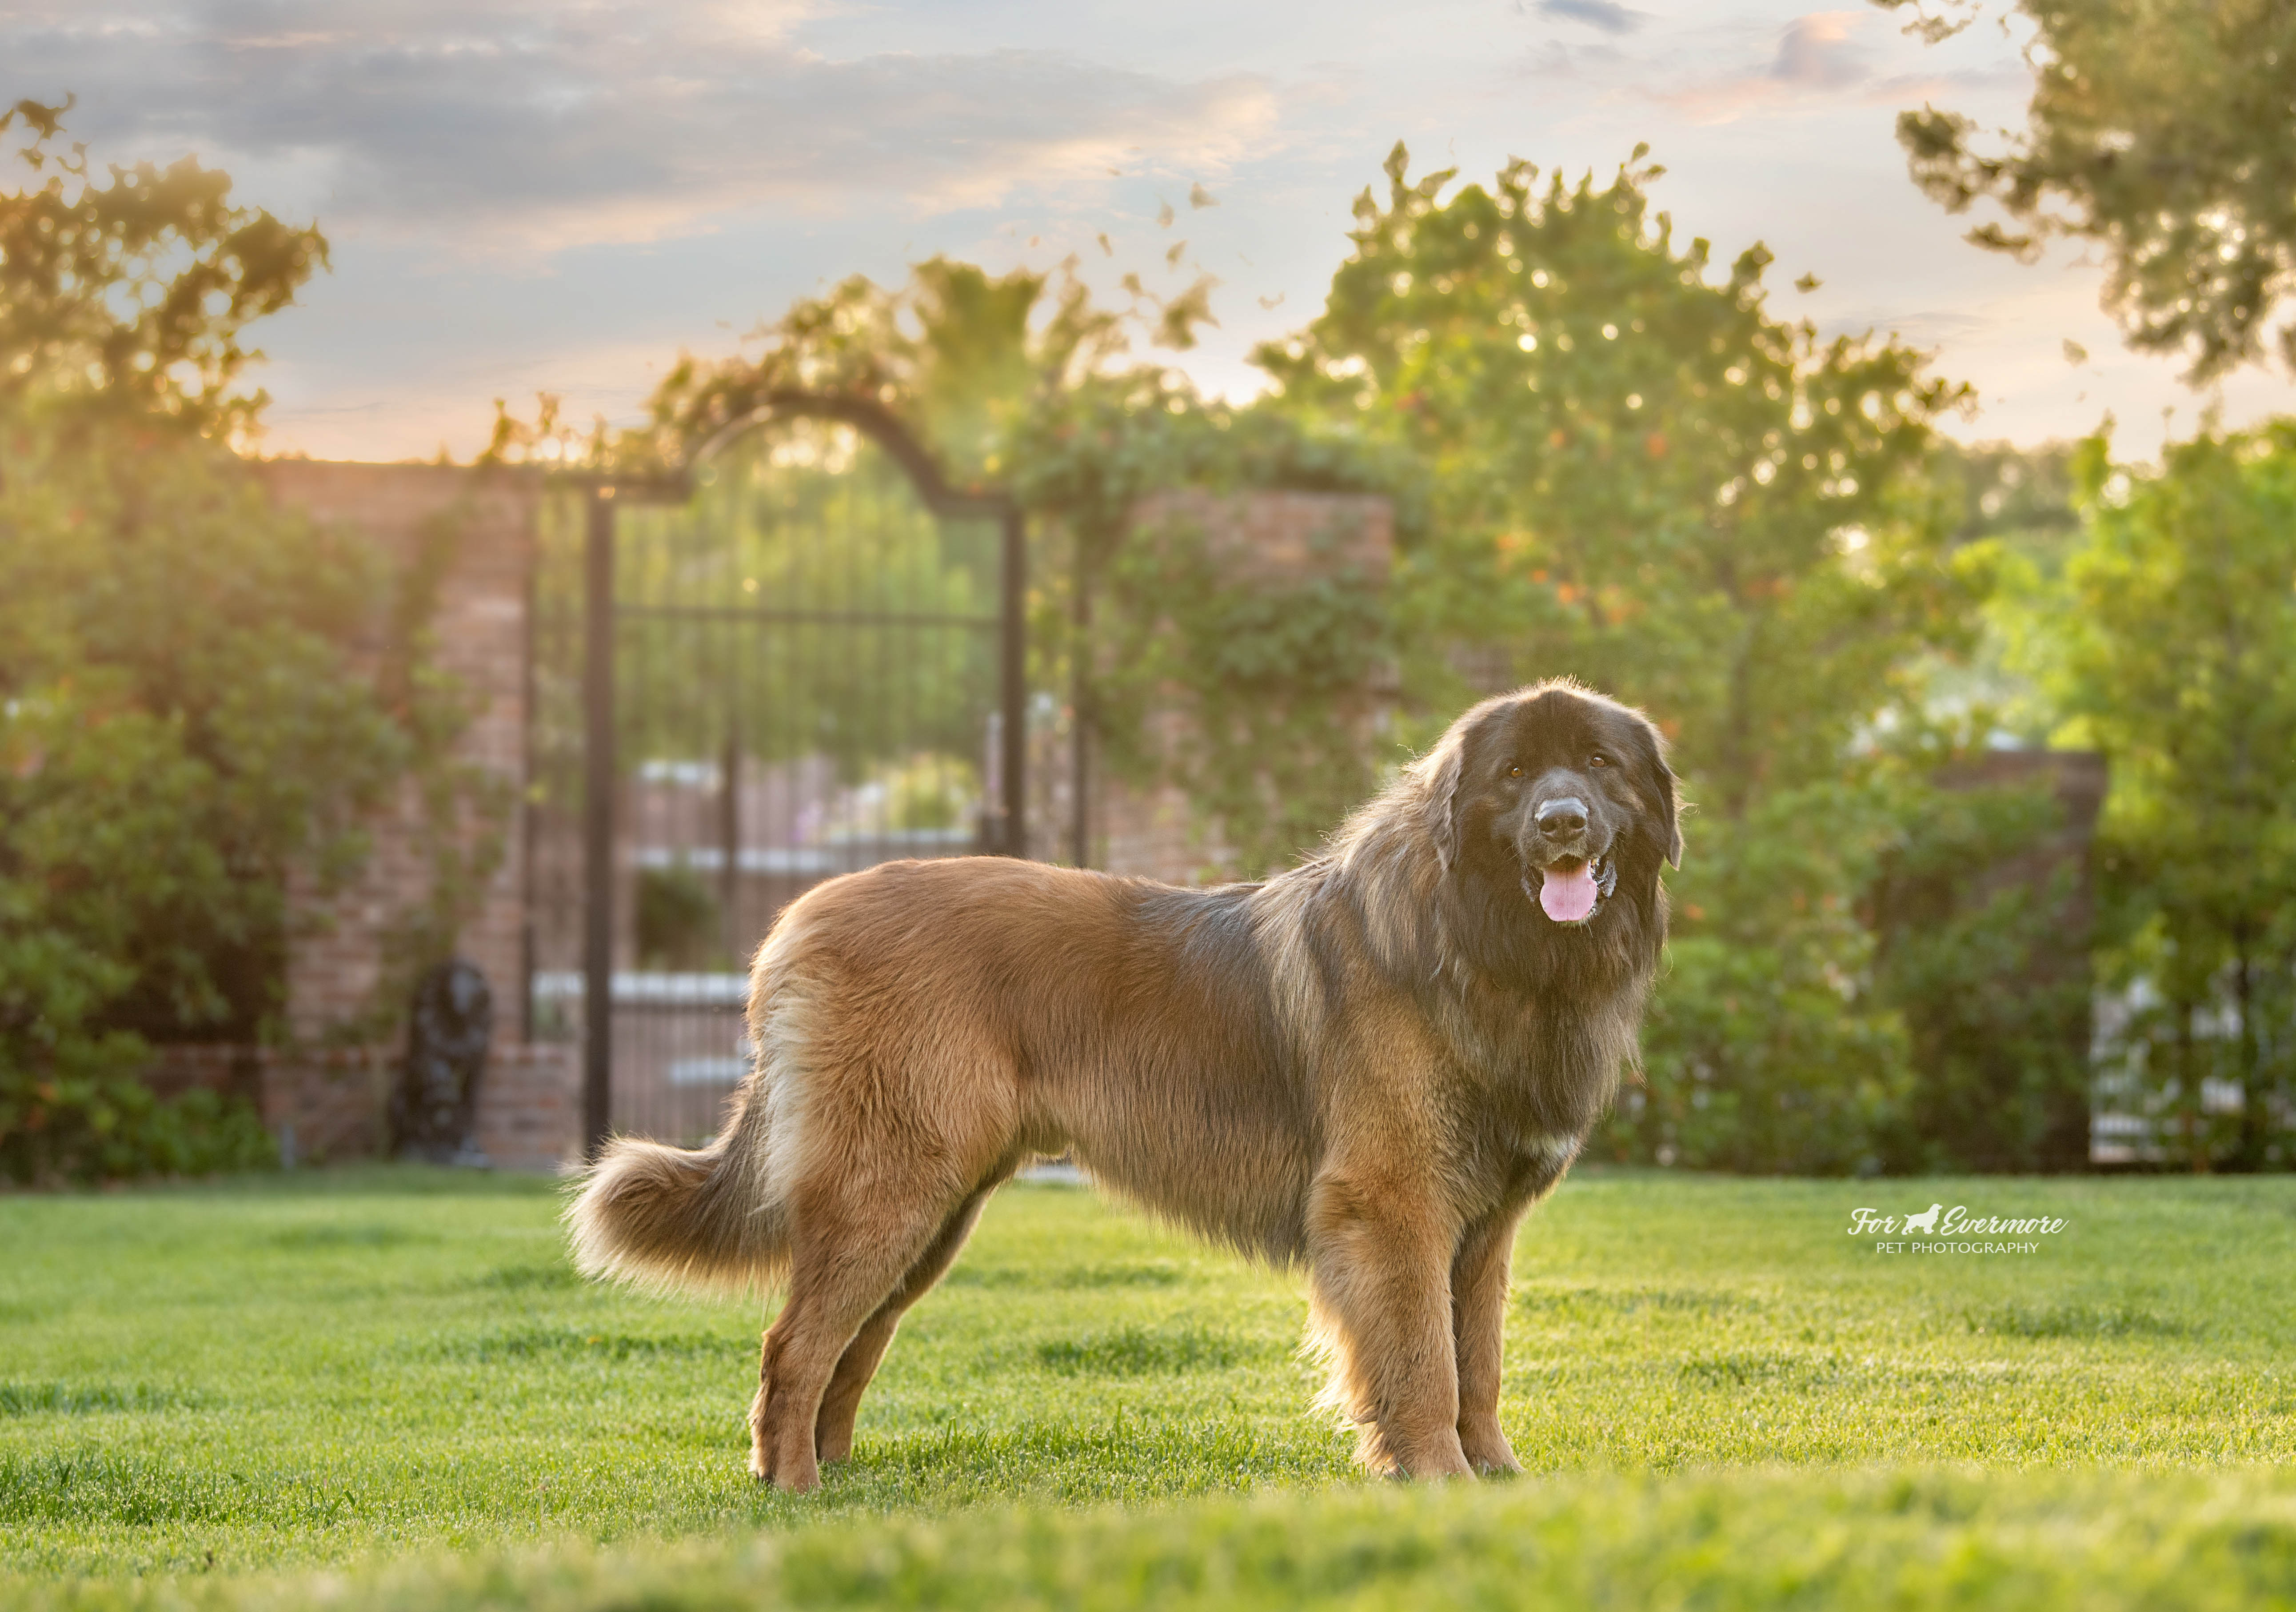 Jake the Leonberger at sunset